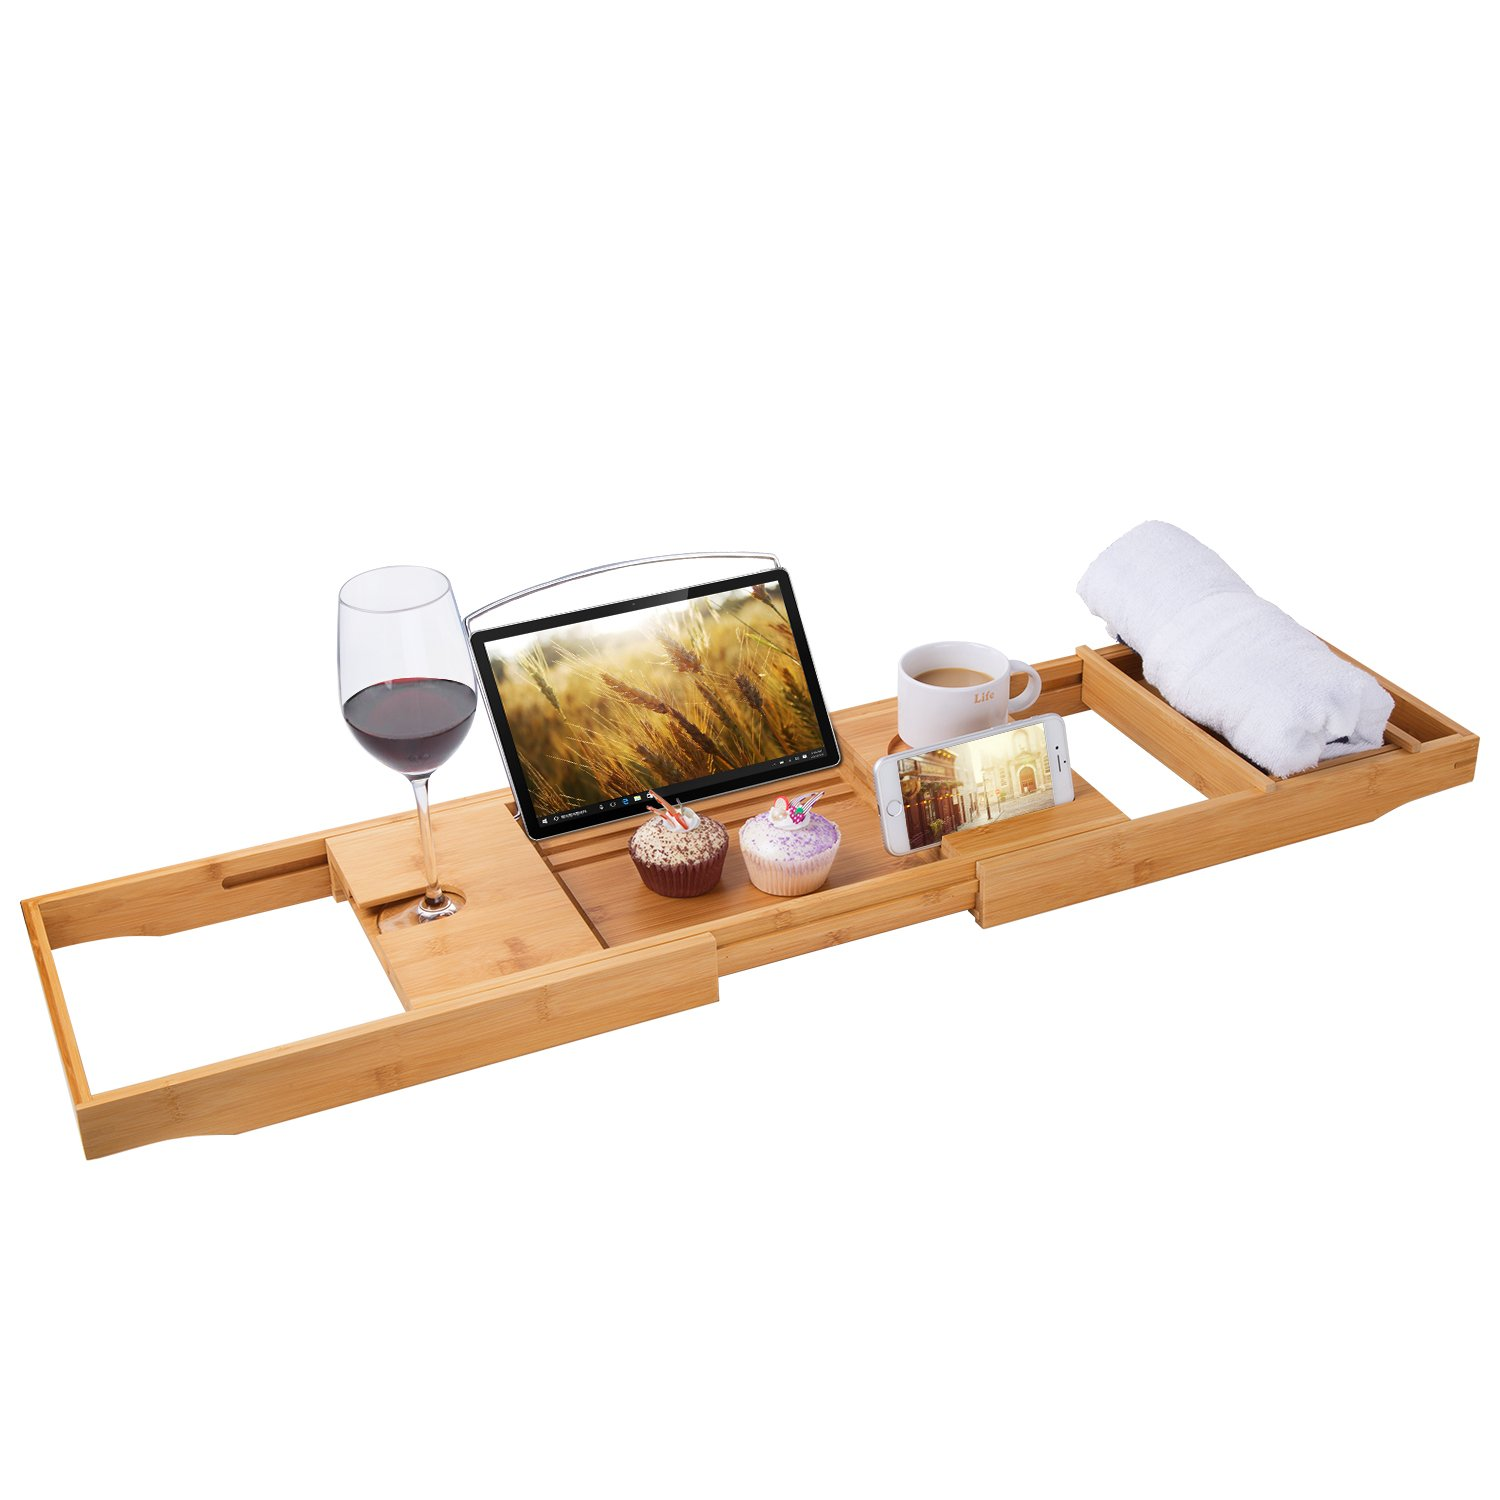 Bamboo Bathtub Caddy Shower Over Tub Tray Organizer with Extendable Sides, Cellphone Tray Integrated Wineglass Holder